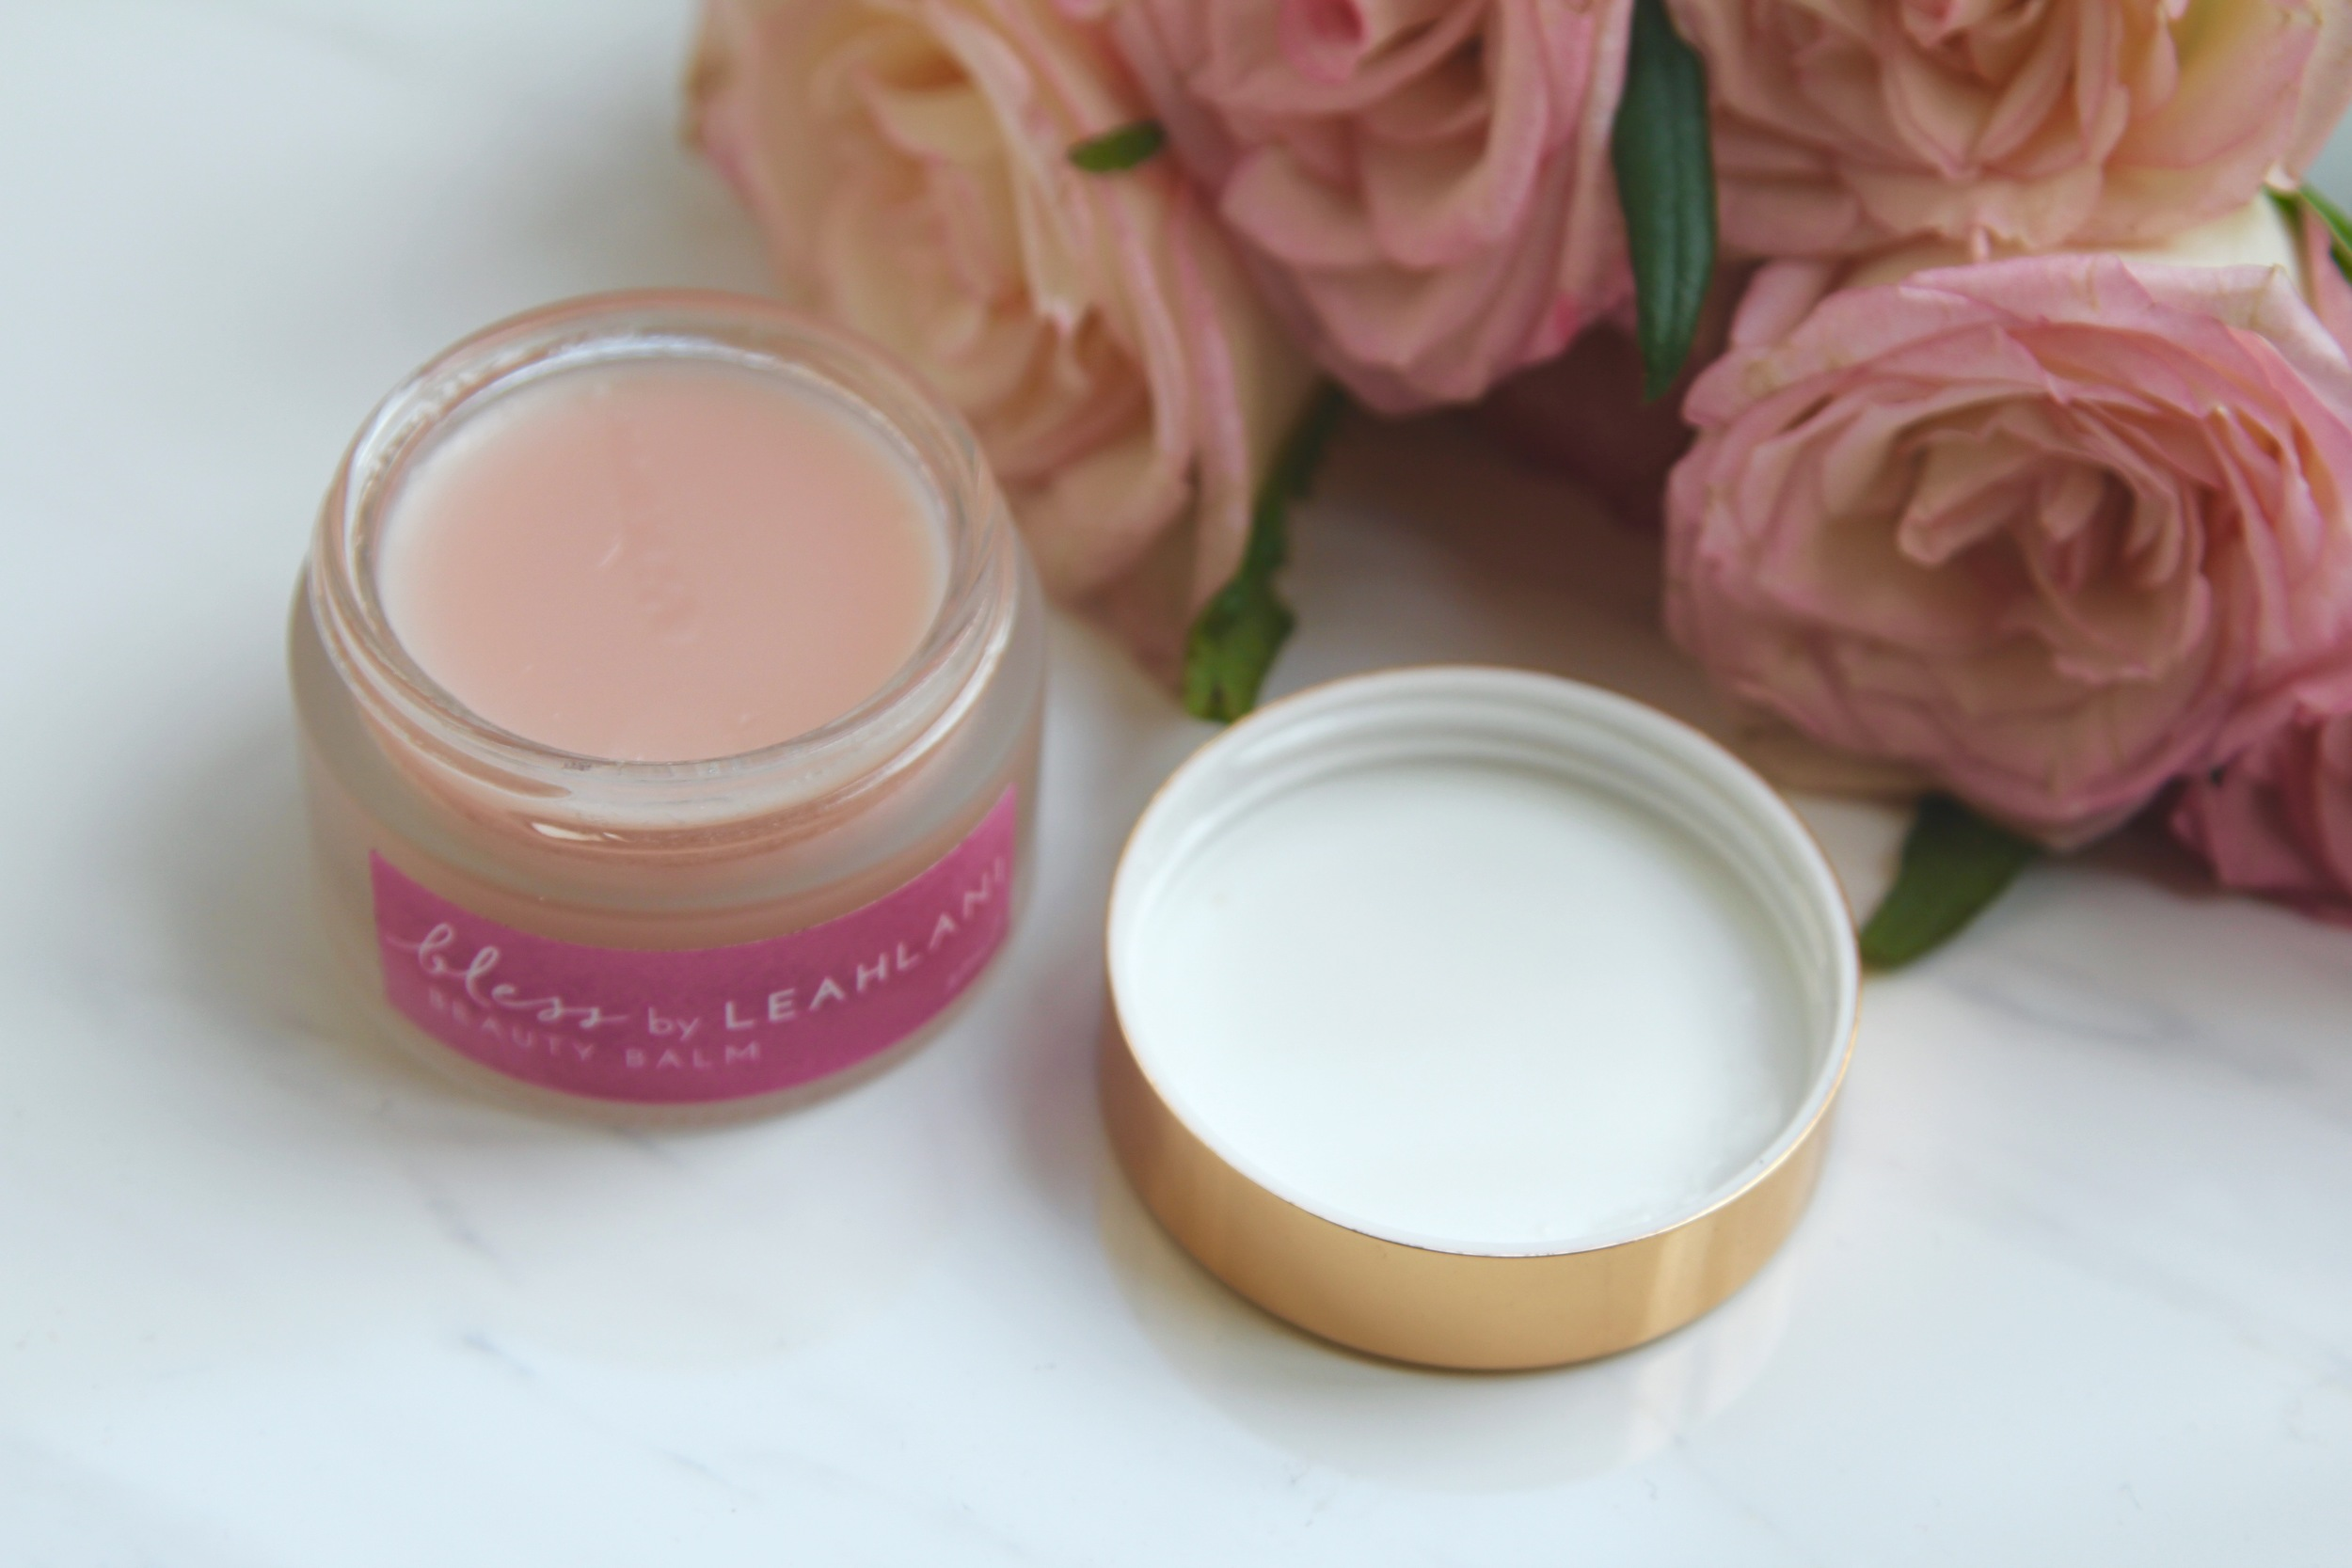 Doesn't this look lush? Leah Lani's Bless Balm smells as pretty as it looks!